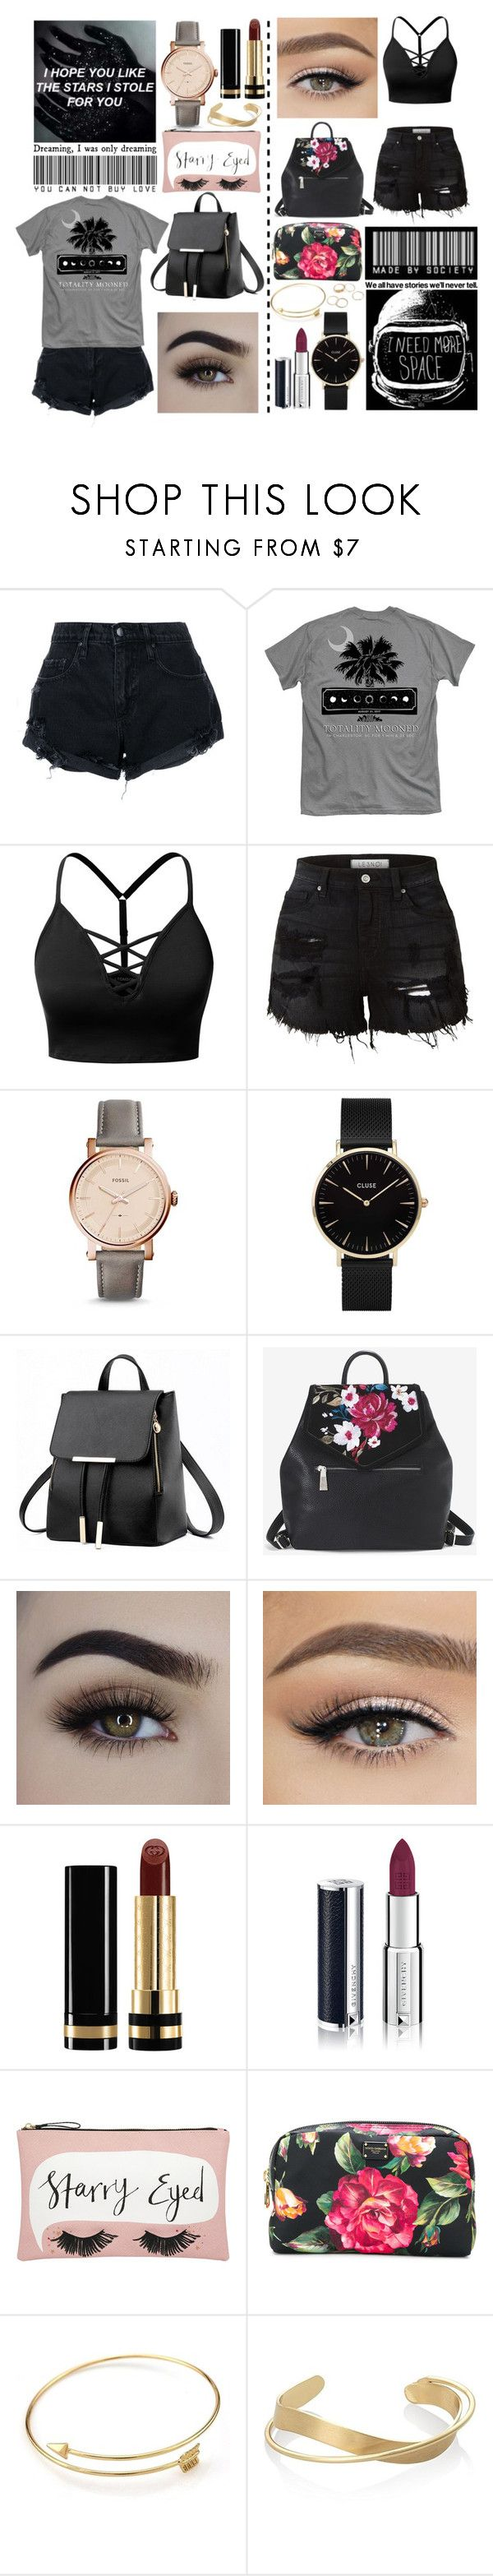 """""""Untitled #27"""" by deadgir1walking ❤ liked on Polyvore featuring Grotesk, Nobody Denim, J.TOMSON, LE3NO, FOSSIL, CLUSE, White House Black Market, Gucci, Givenchy and Accessorize"""